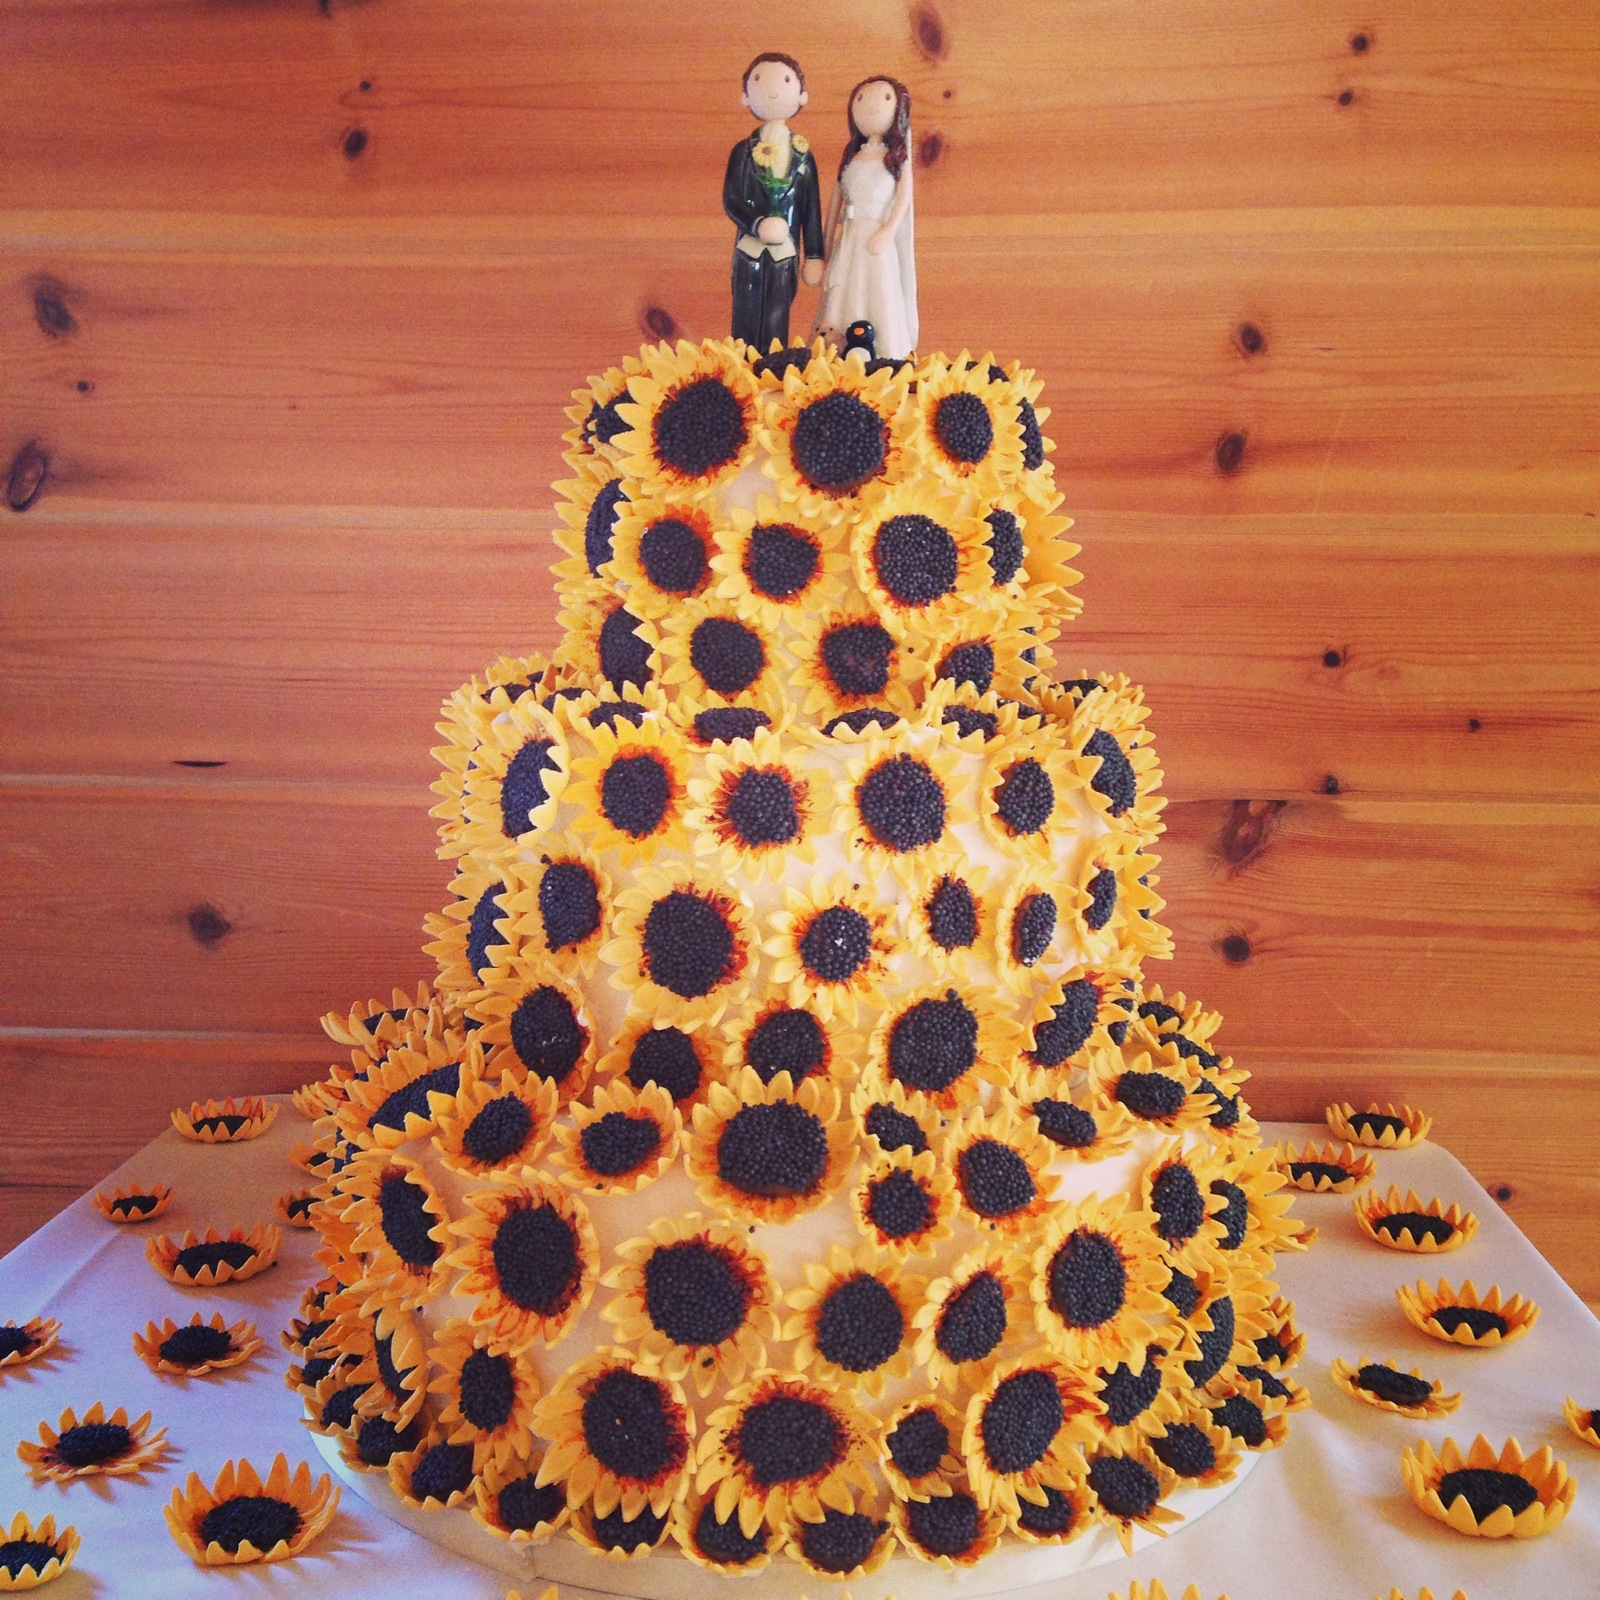 Sunflower Wedding Cake Ideas: The 14 Best Sunflower Wedding Cake Ideas And Inspiration